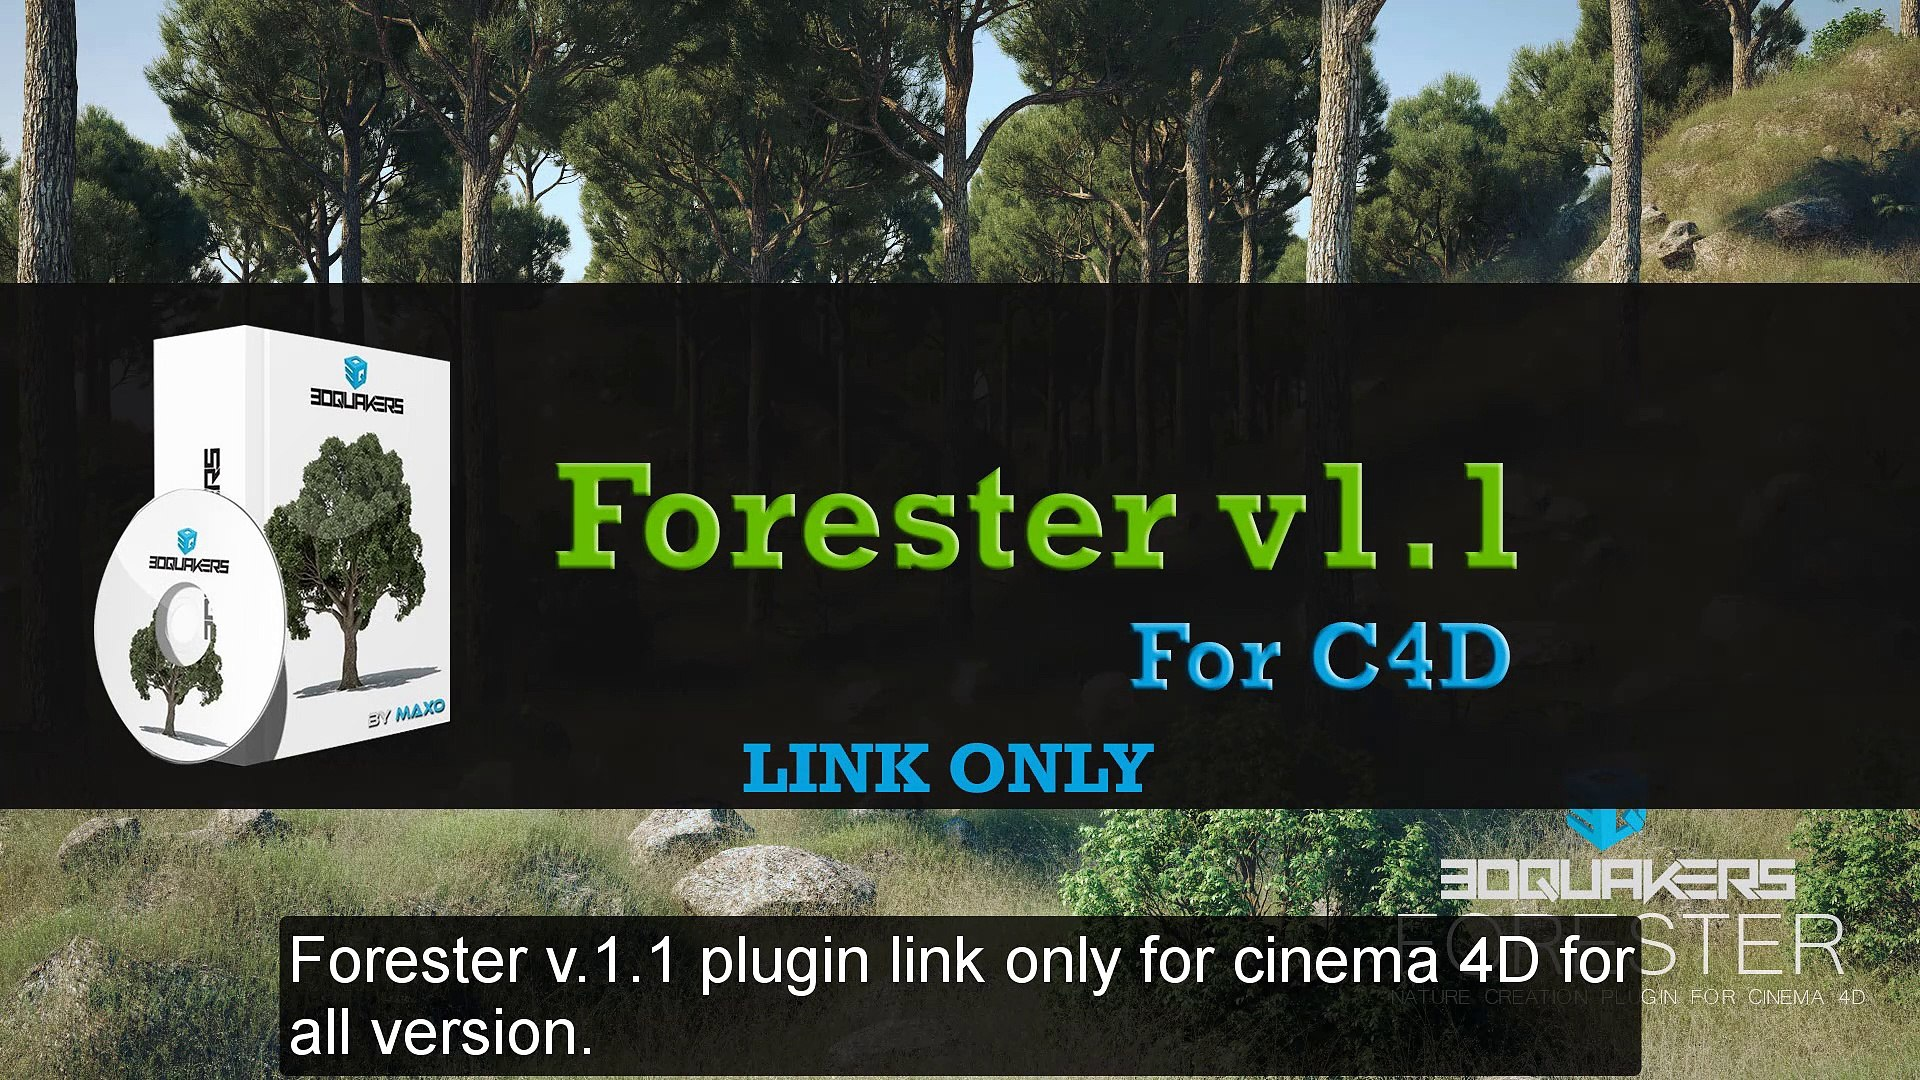 forester v 1 1 for cinema 4D R14-R17 (3DQUAKERS)